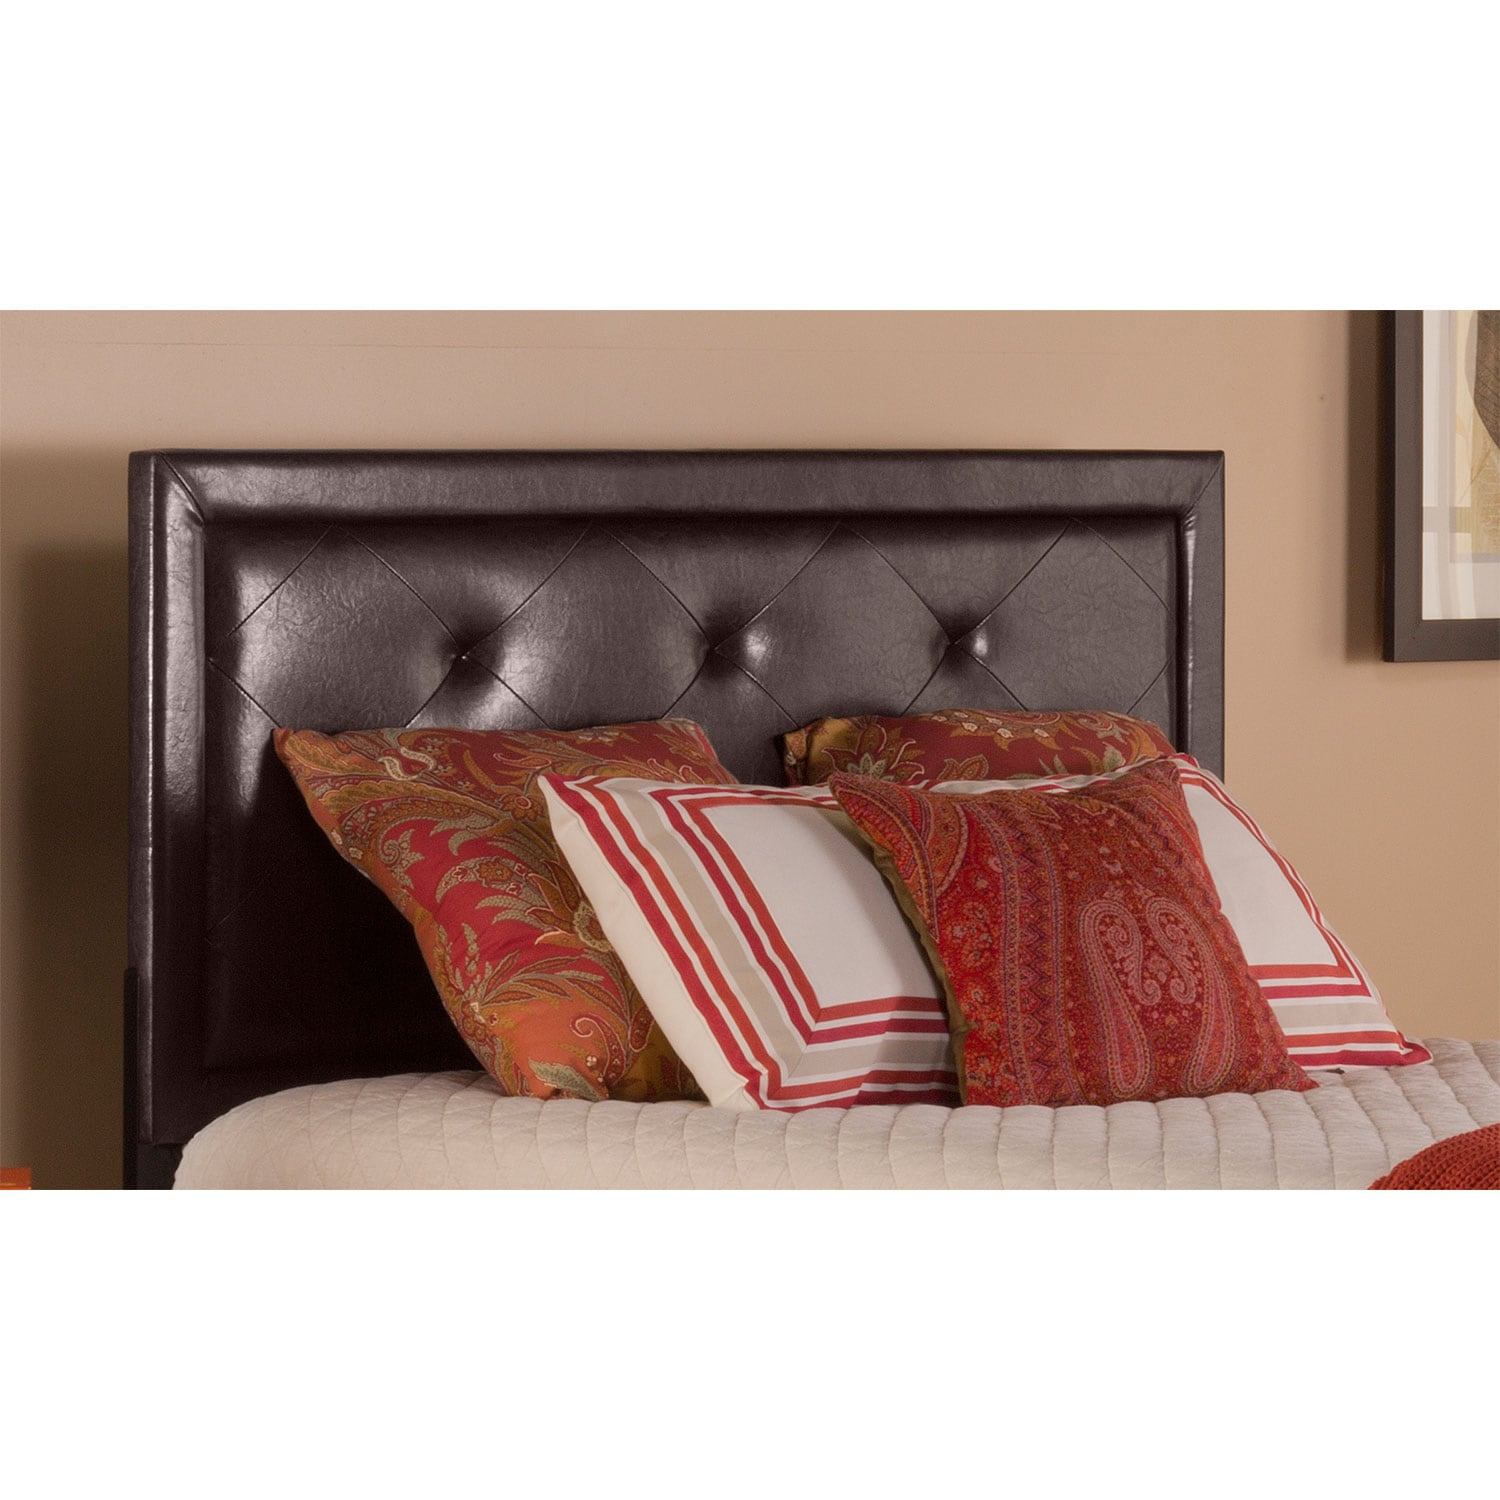 Bedroom Furniture - Becker Full Headboard - Brown